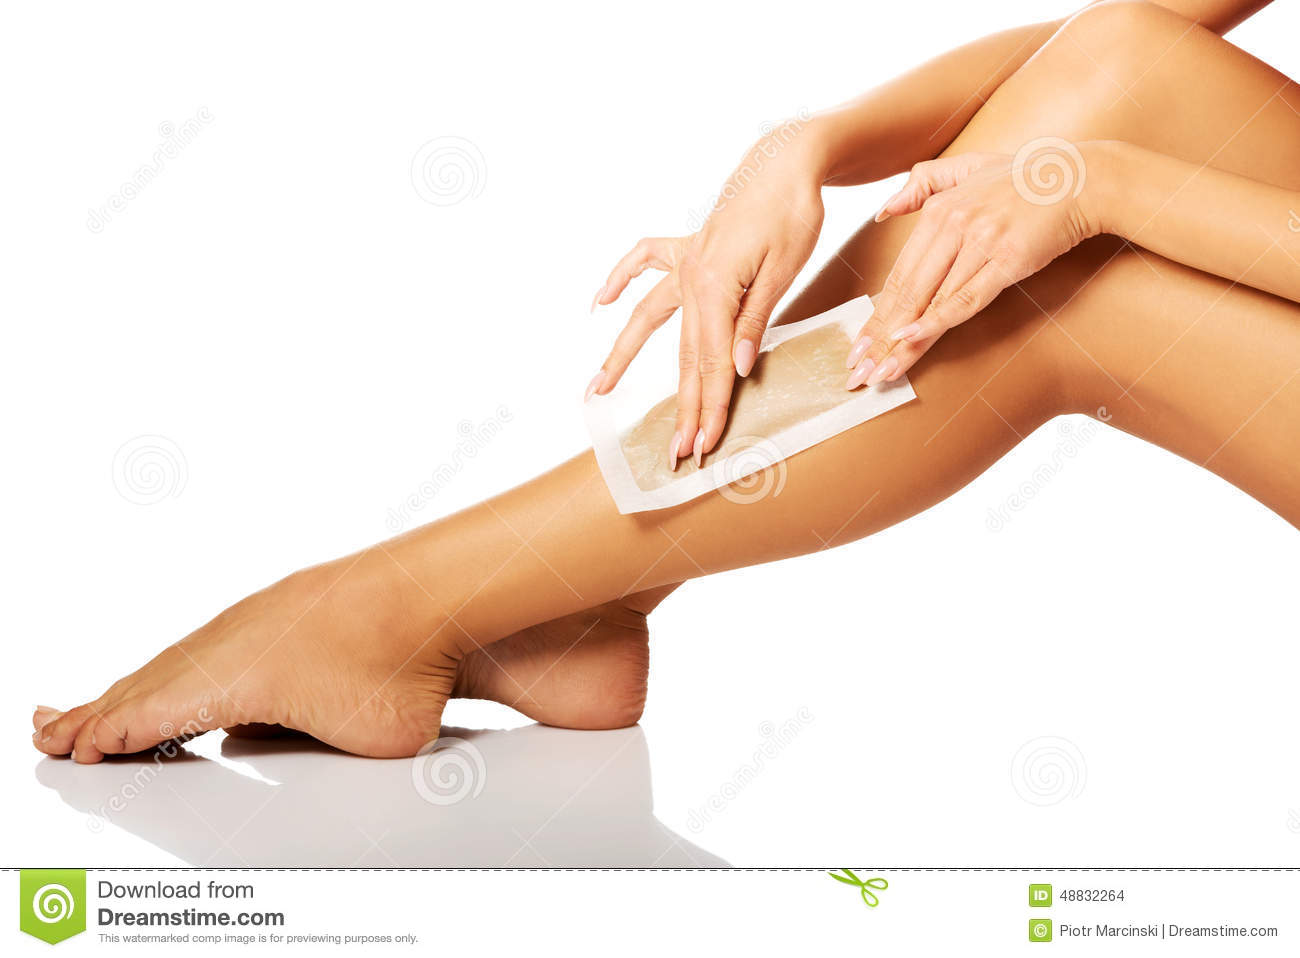 how to get rid of spots on legs after waxing